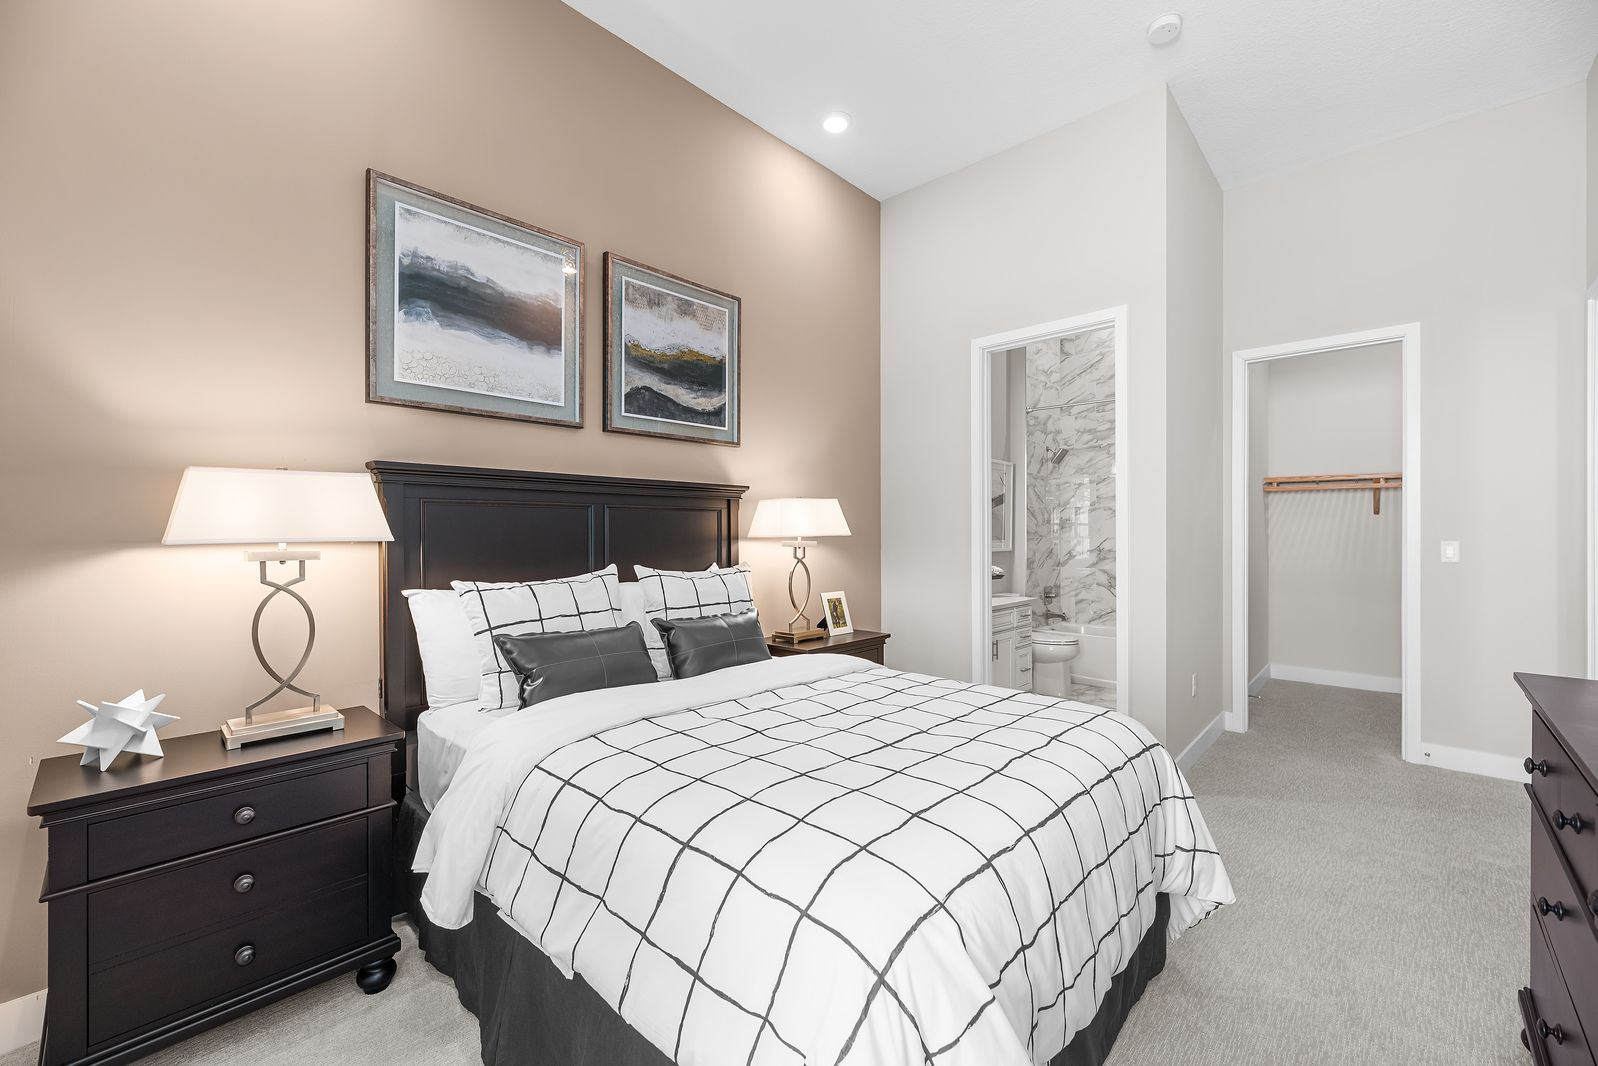 Bedroom featured in the Islamorada- The Vanderbilt Collection By Ryan Homes